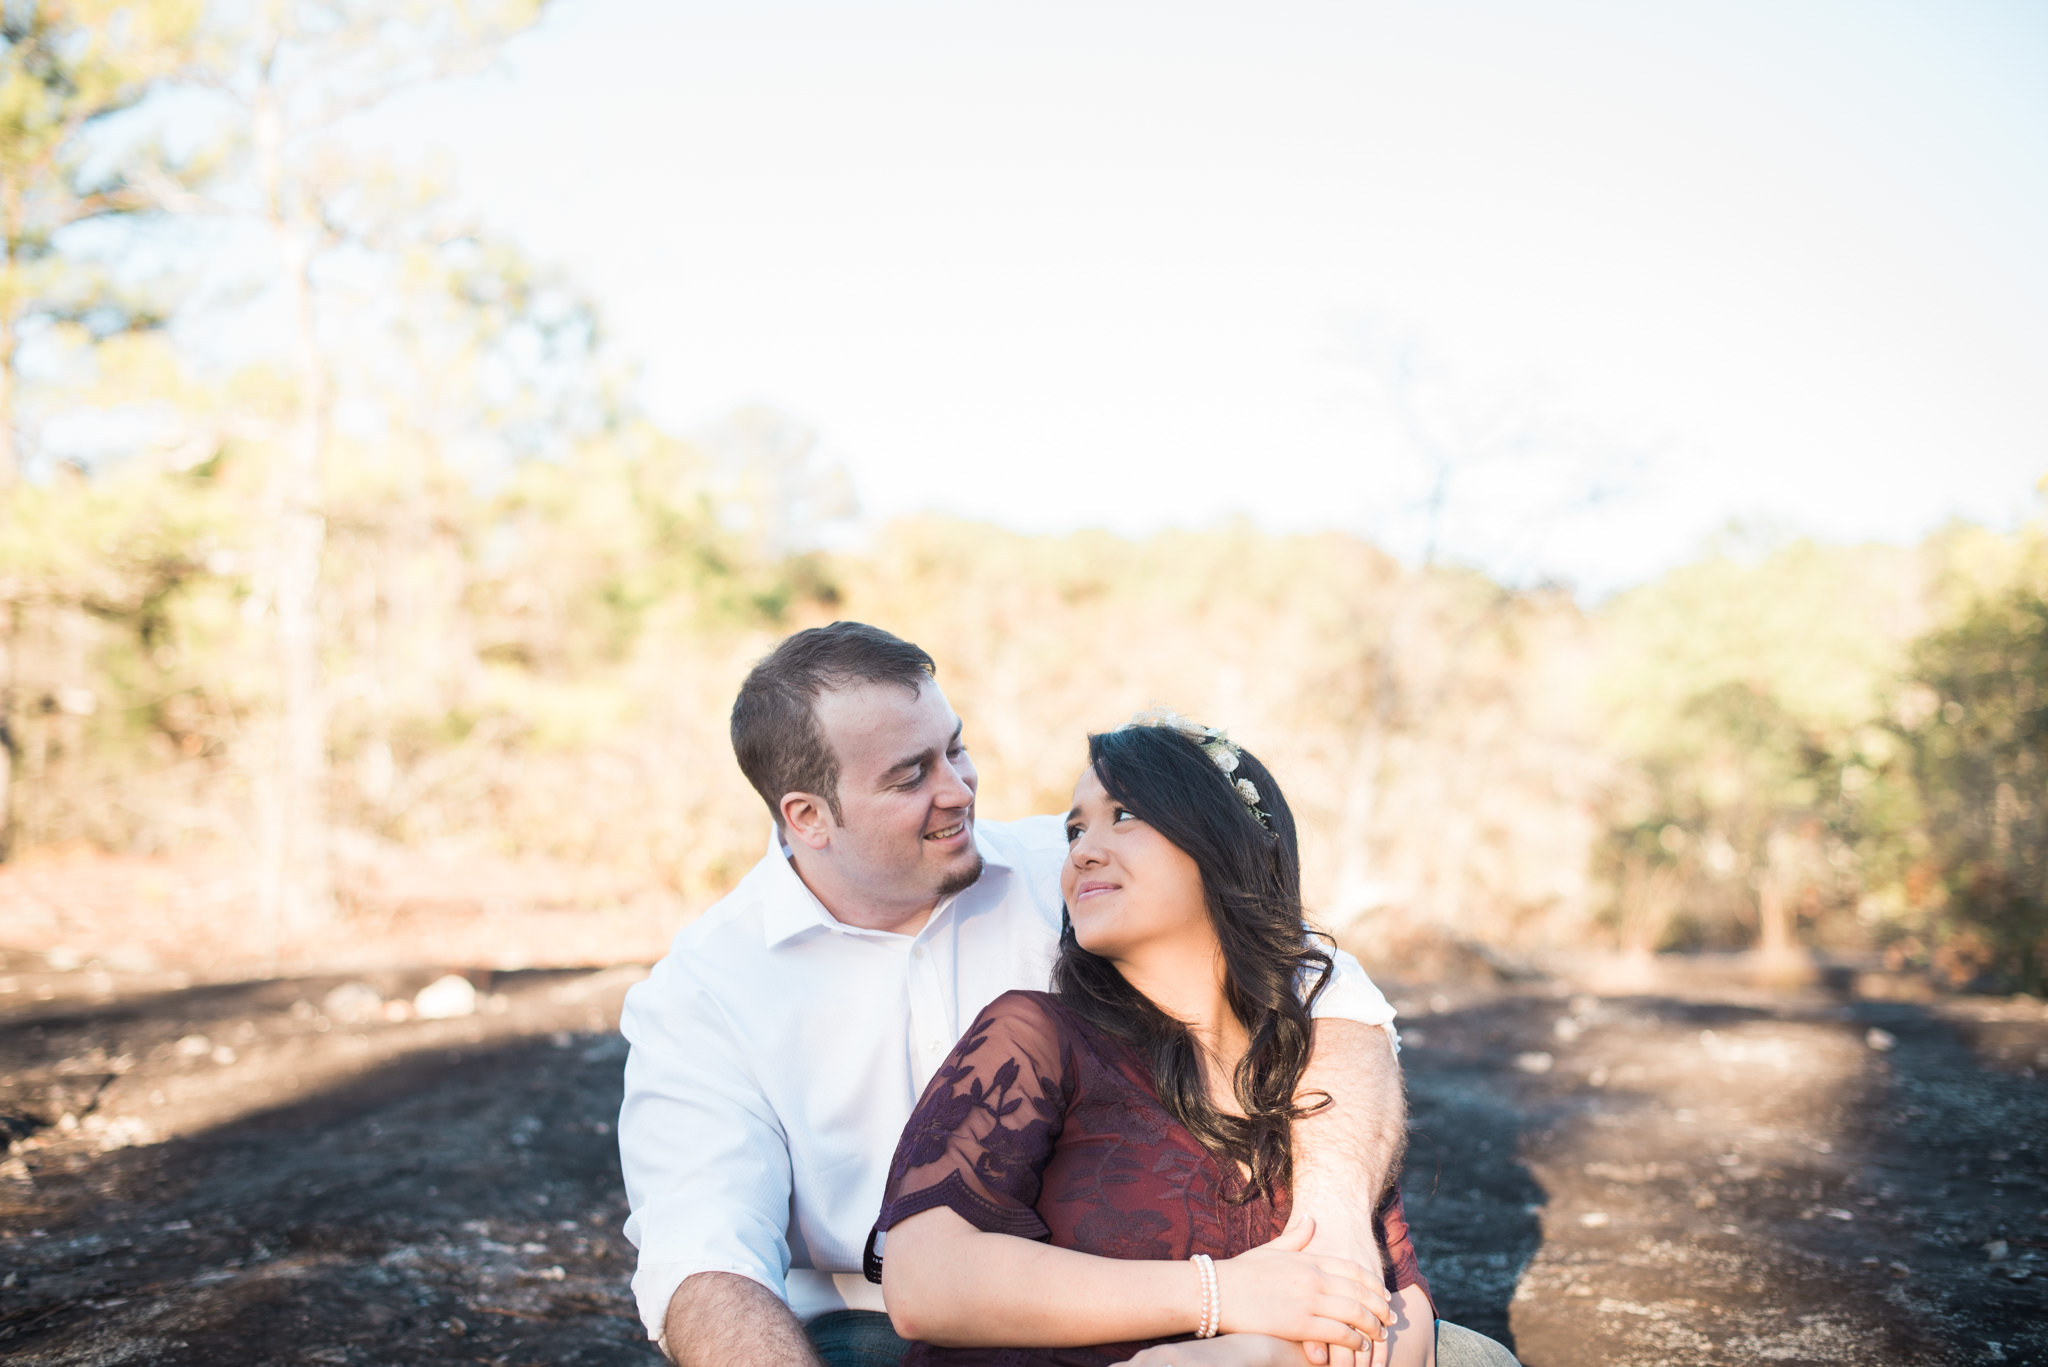 georgia-engagement-photography-15.jpg